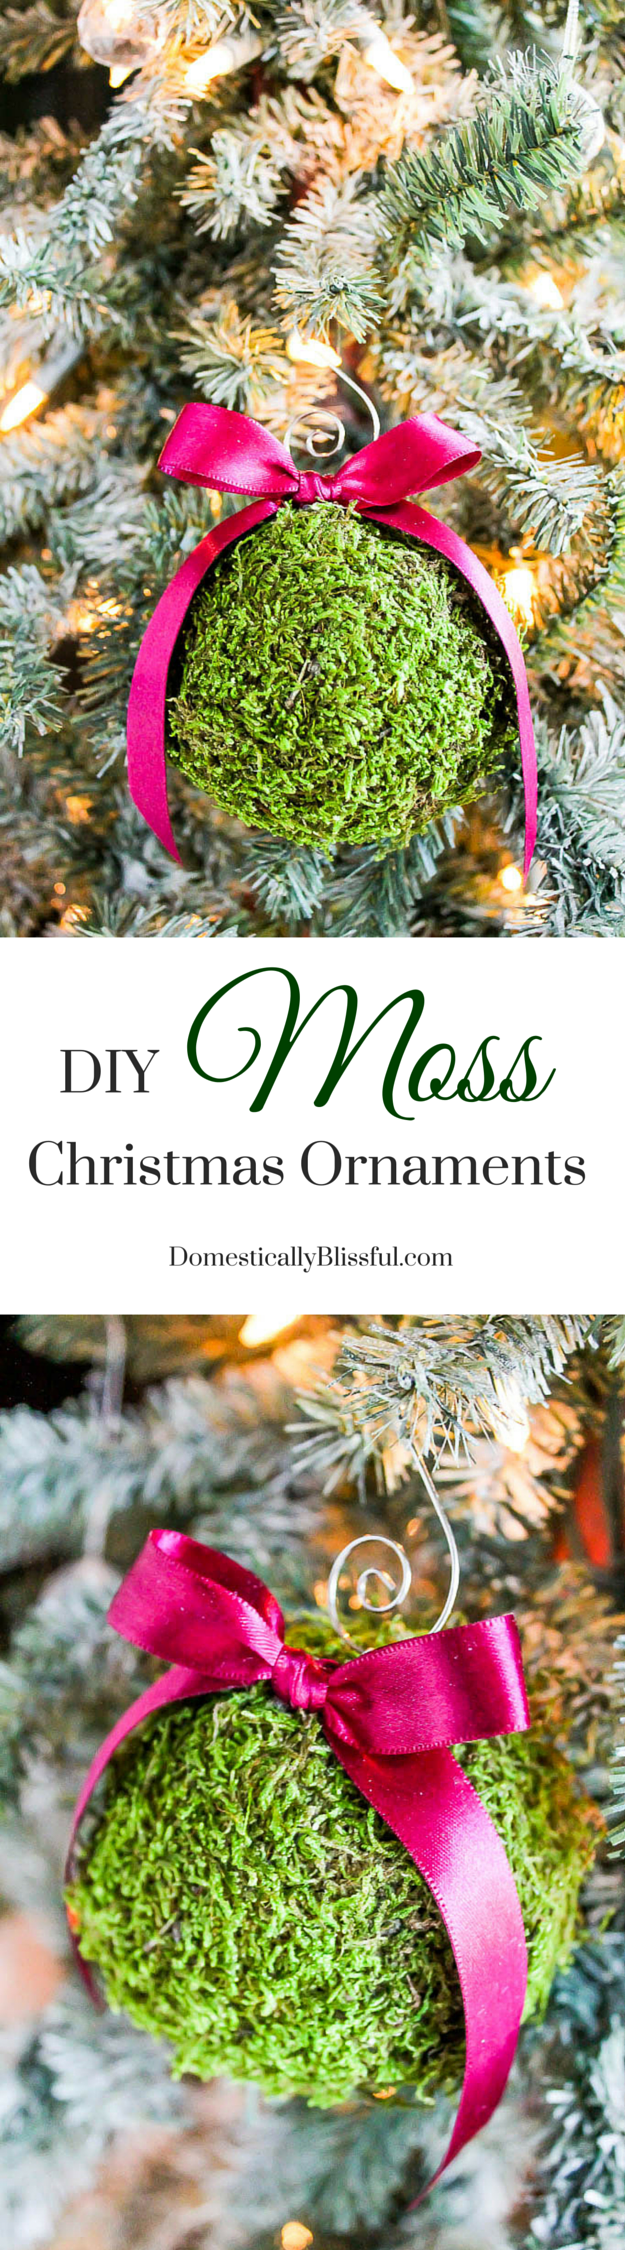 Create one-of-a-kind shatterproof Moss Christmas Ornaments for your Christmas tree this holiday season with this simple tutorial!